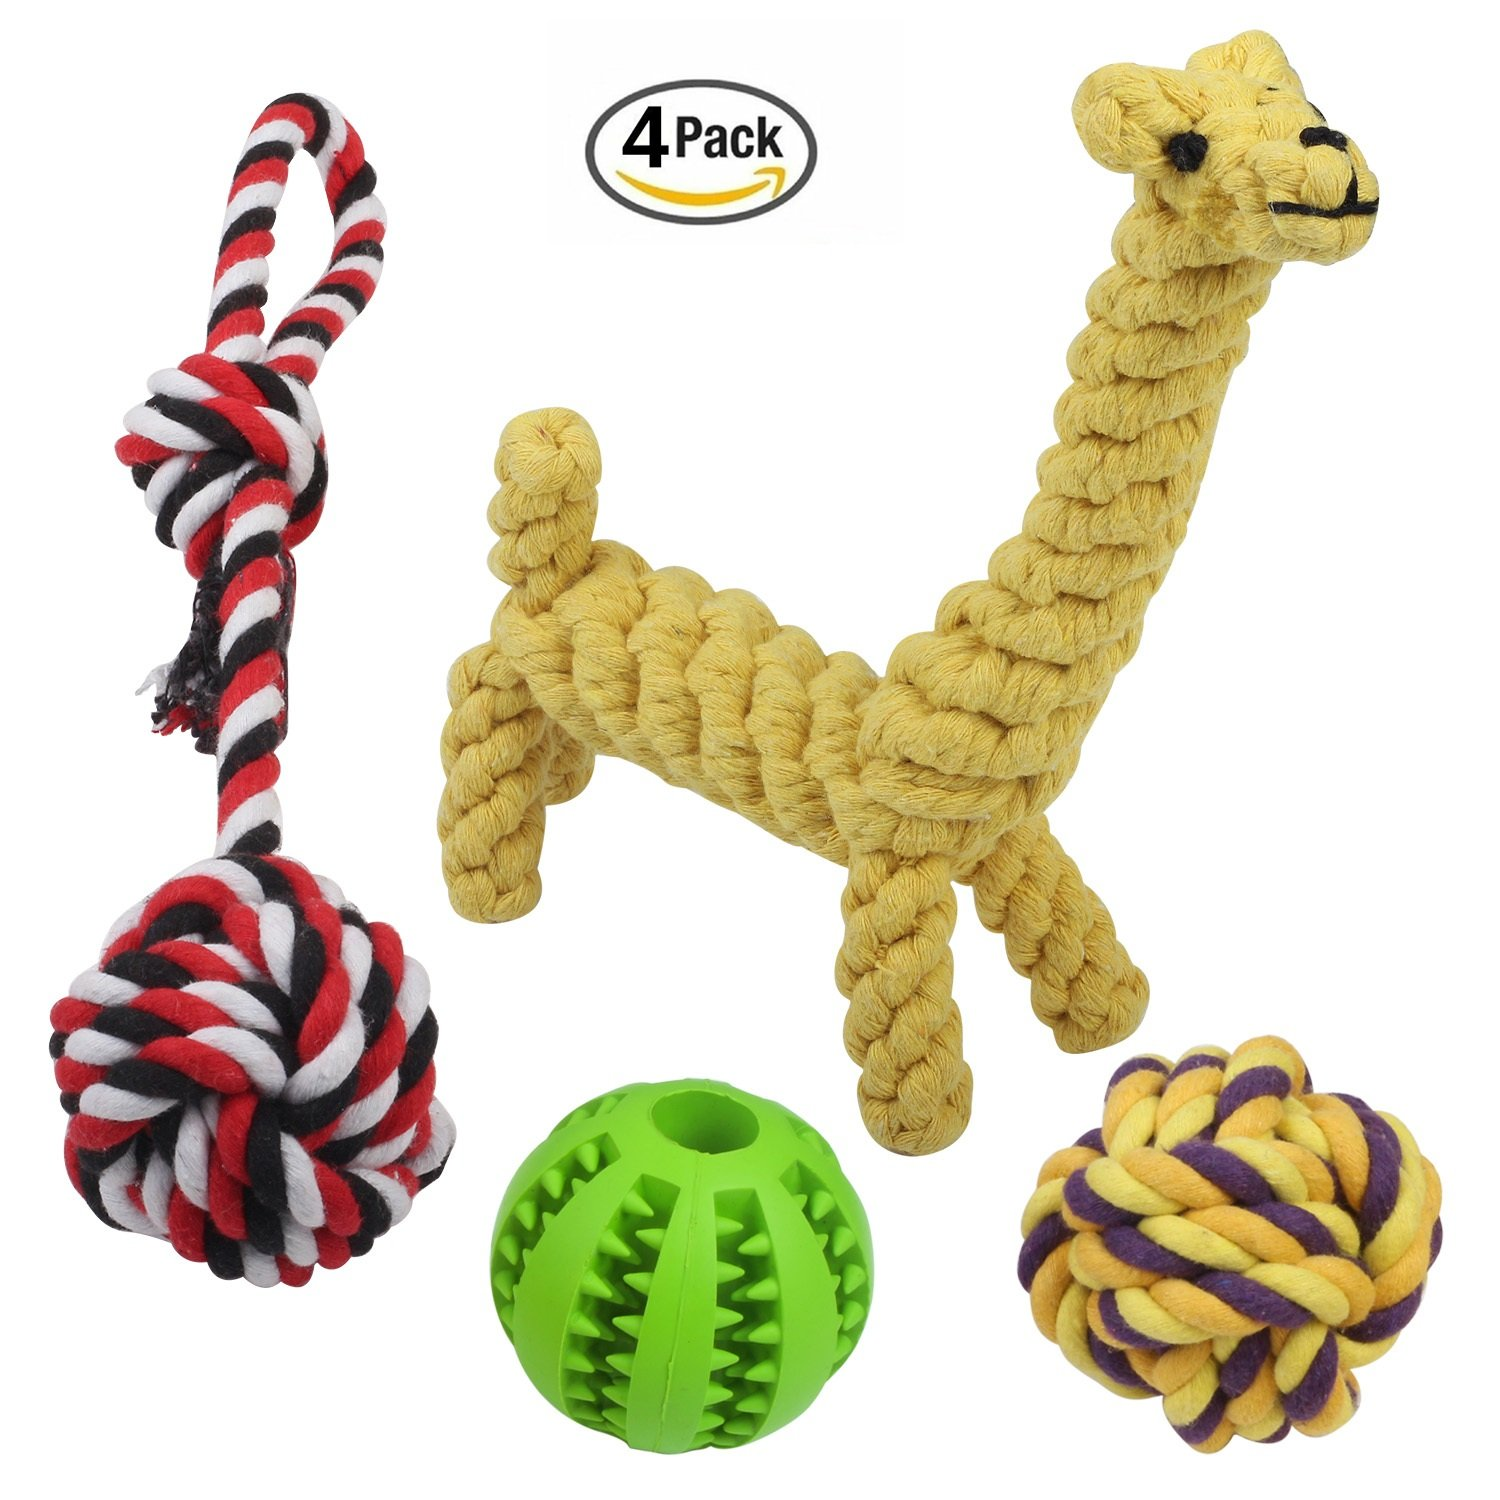 Decyam Durable Dog Toys 4 Pack, Pet Cotton Rope Chew Dog Toys for Small and Medium Dogs